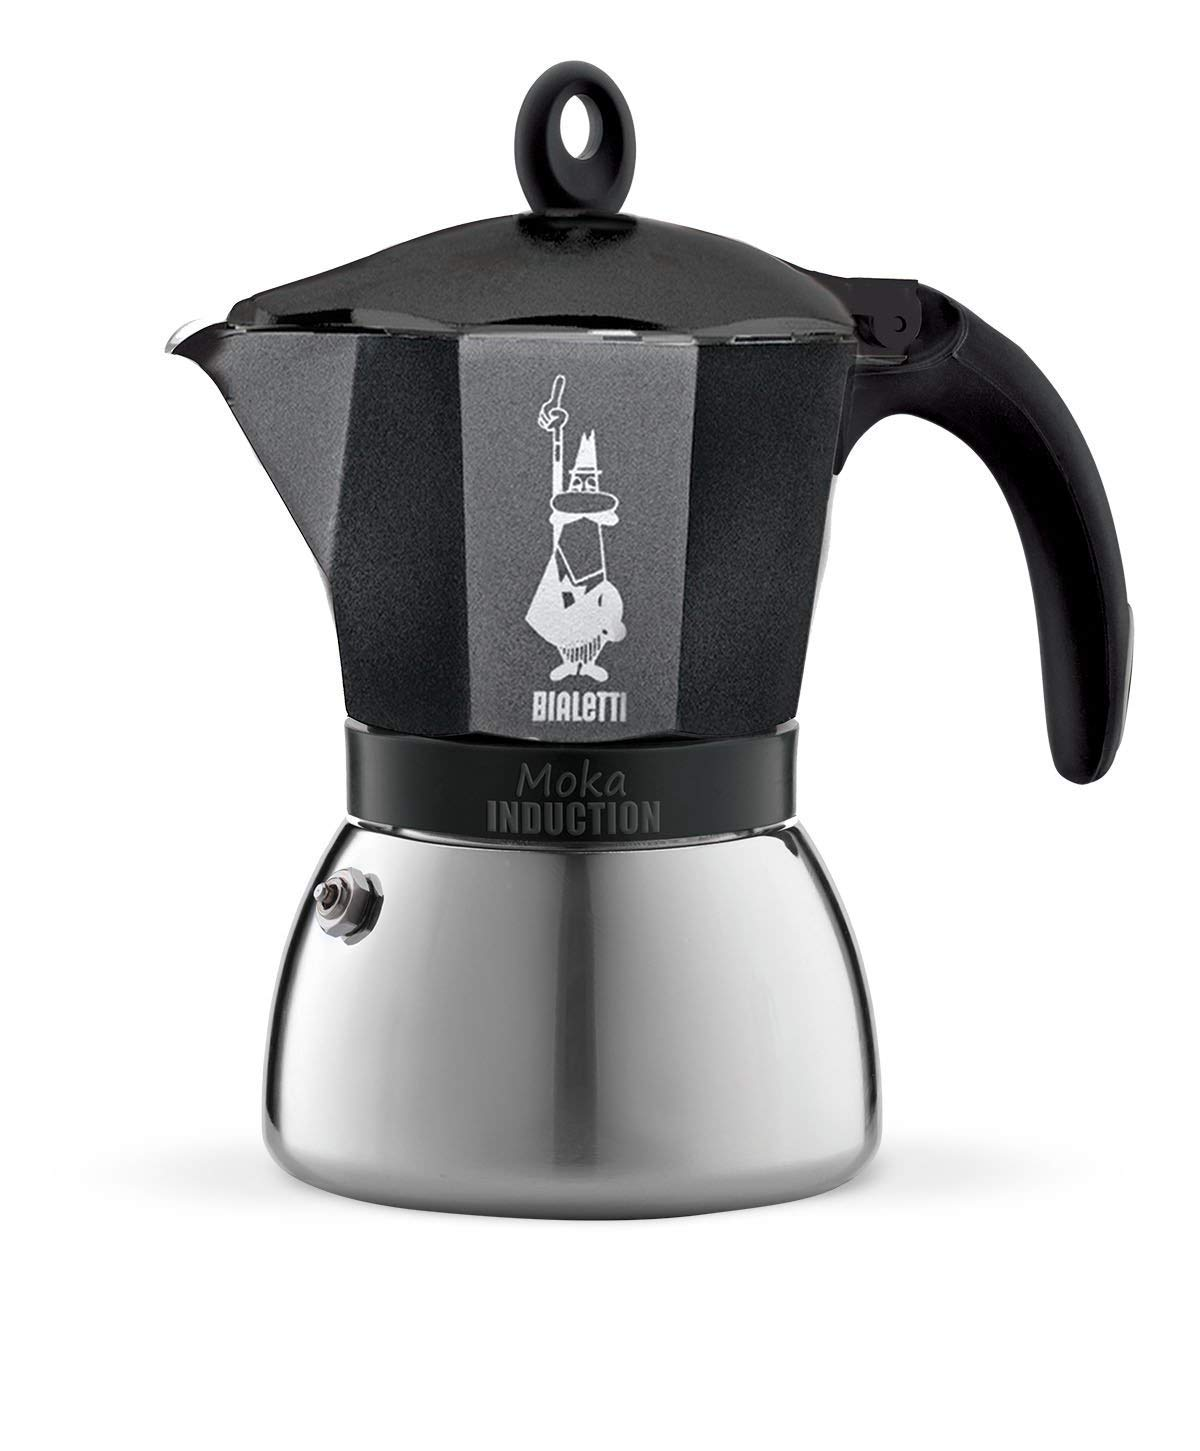 Bialetti 4813 Moka Induction Espresso Maker, Silver/Black